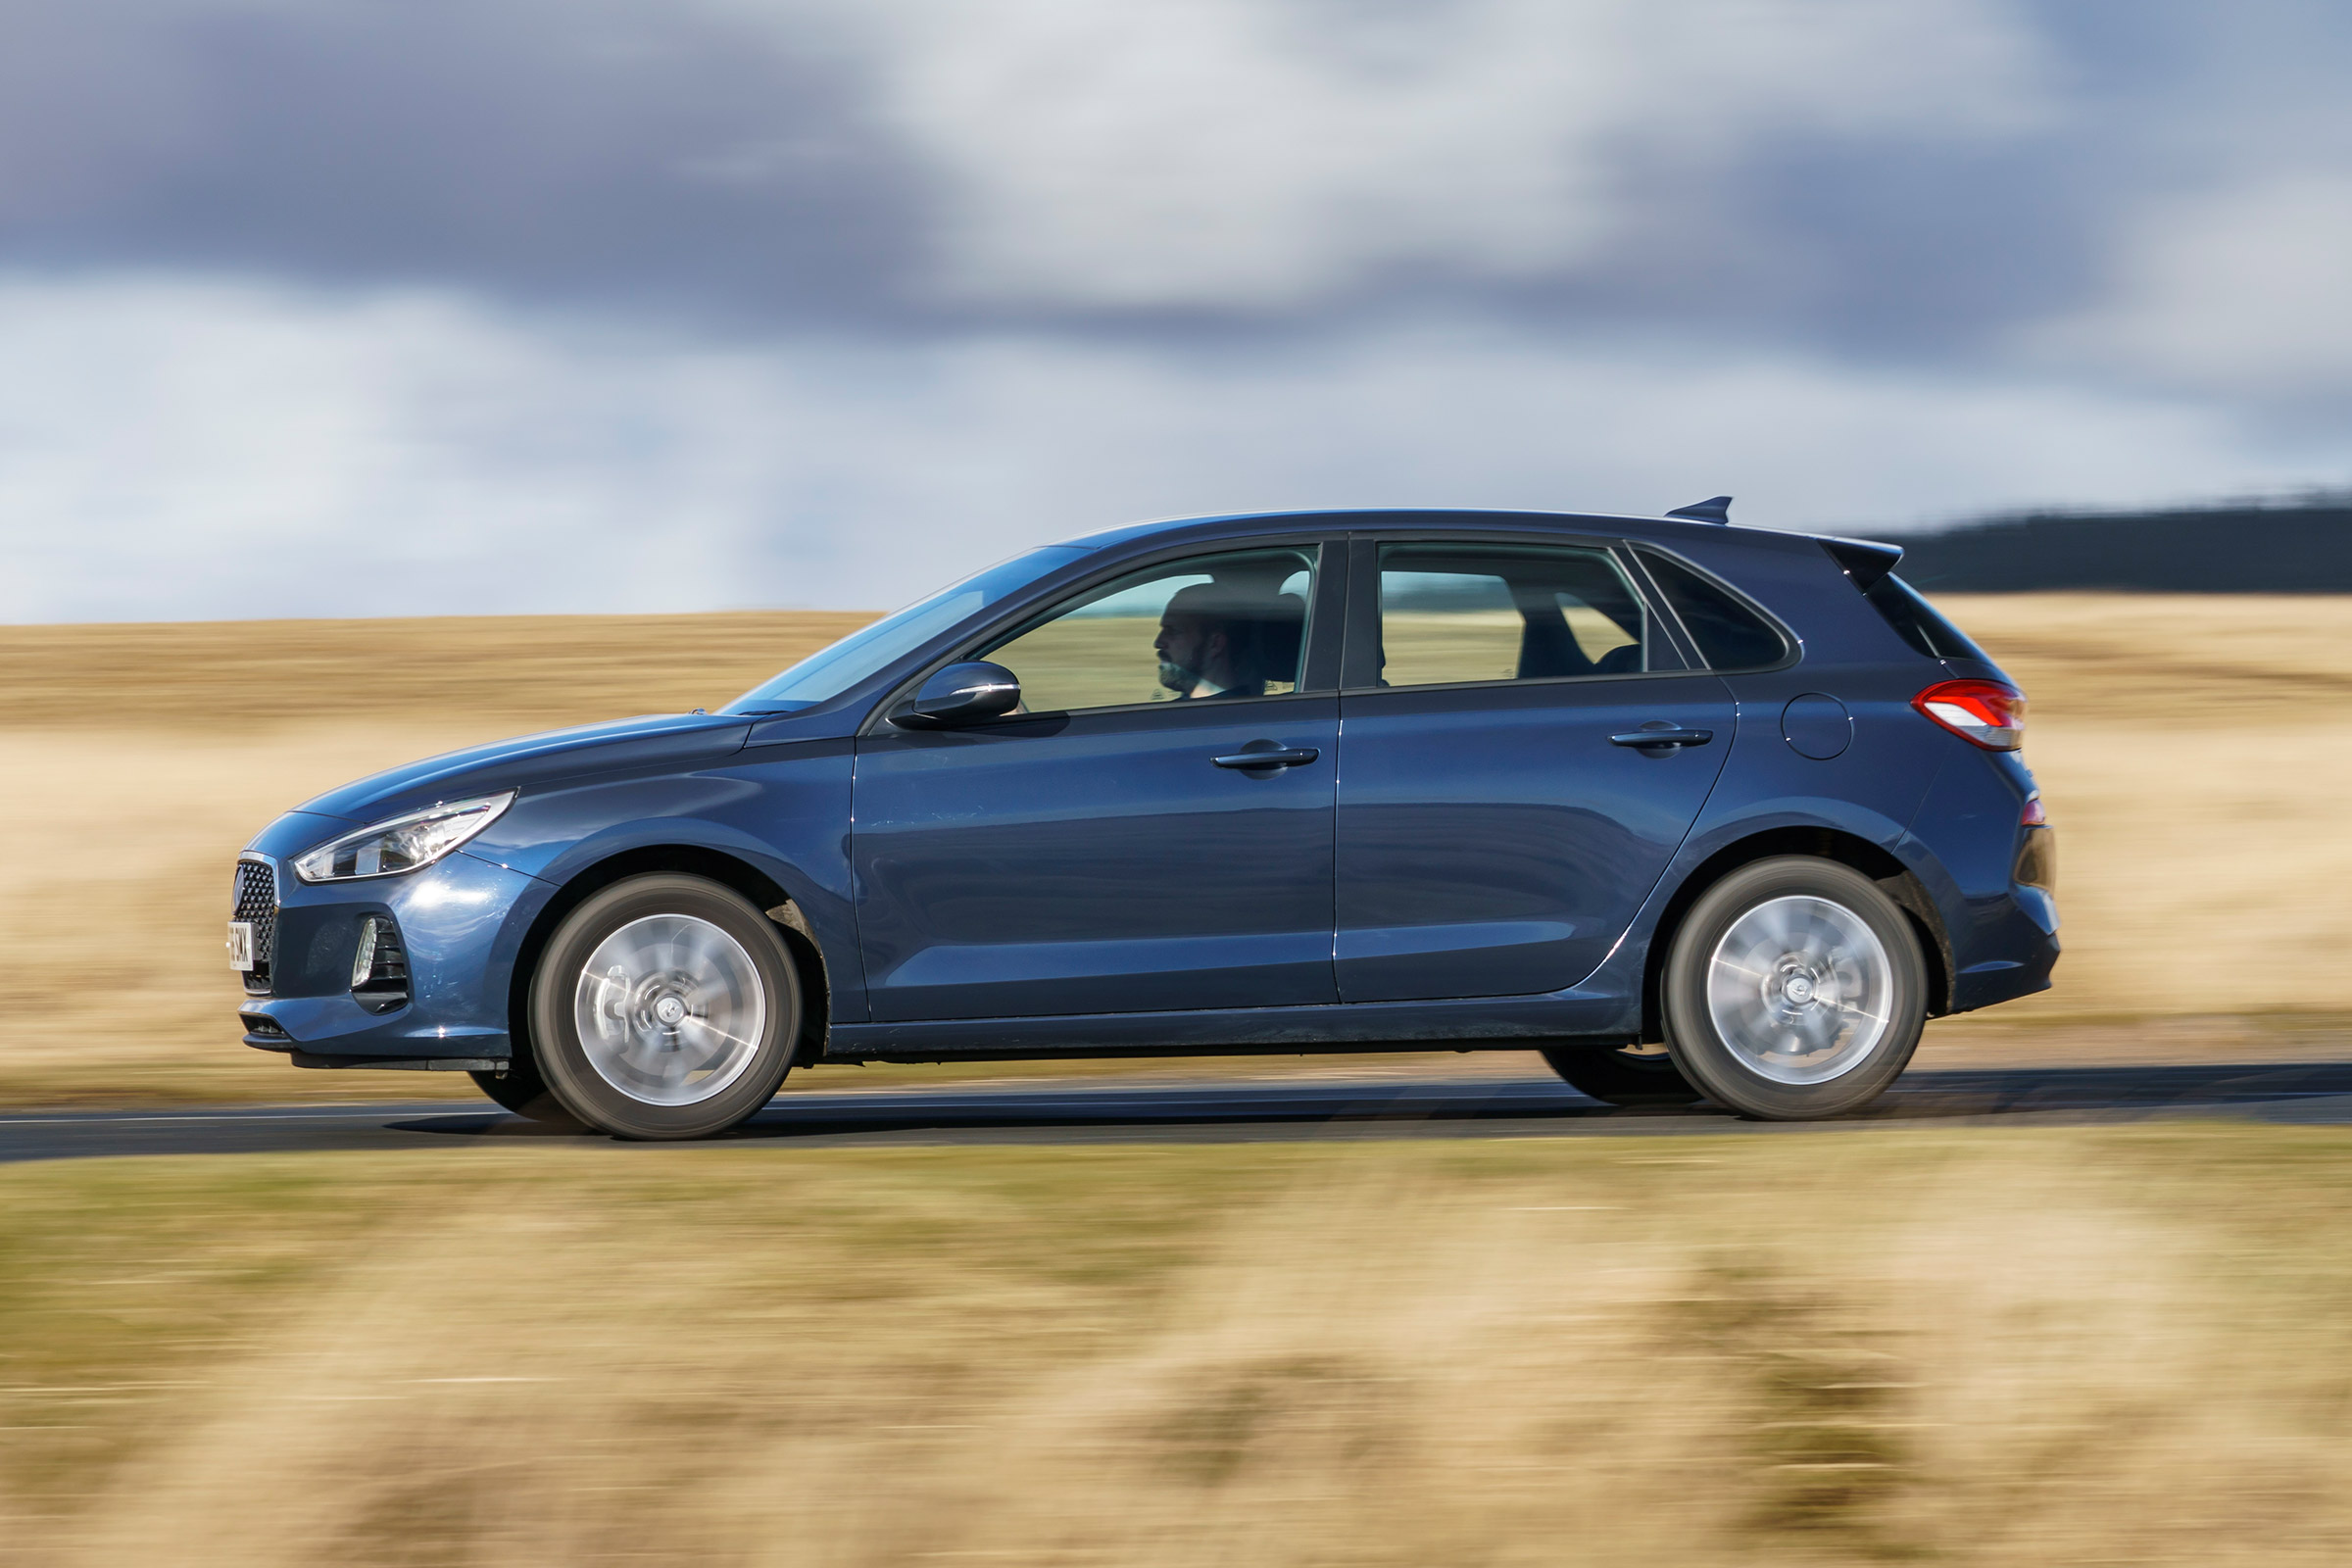 2017 Hyundai I30 Test Drive (Photo 20 of 23)